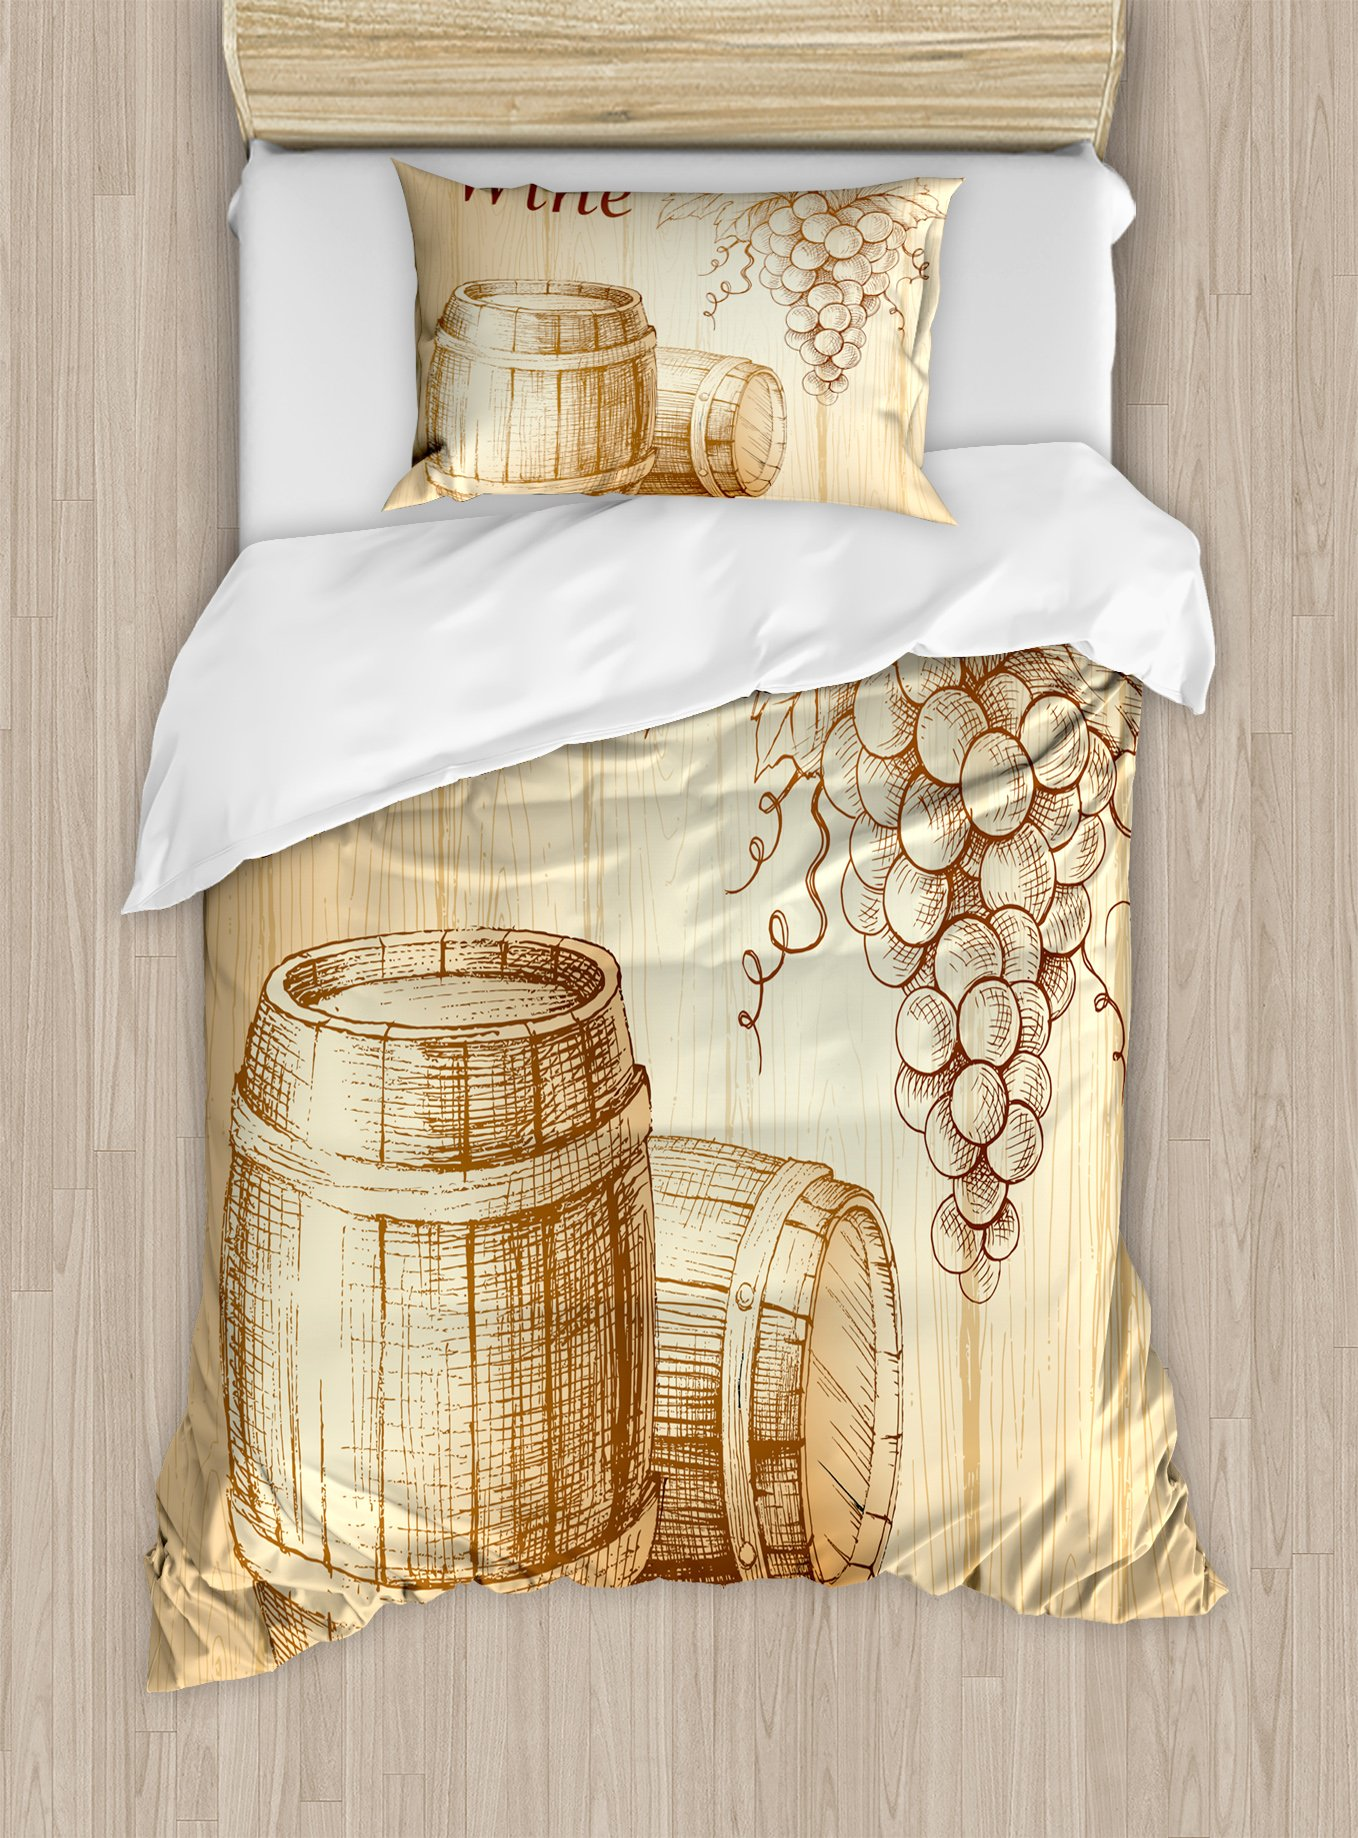 Ambesonne Wine Duvet Cover Set Twin Size, Wooden Barrels and Bunch of Grapes on Wood Backdrop Botany Harvest Theme Artwork, Decorative 2 Piece Bedding Set with 1 Pillow Sham, Brown Peach